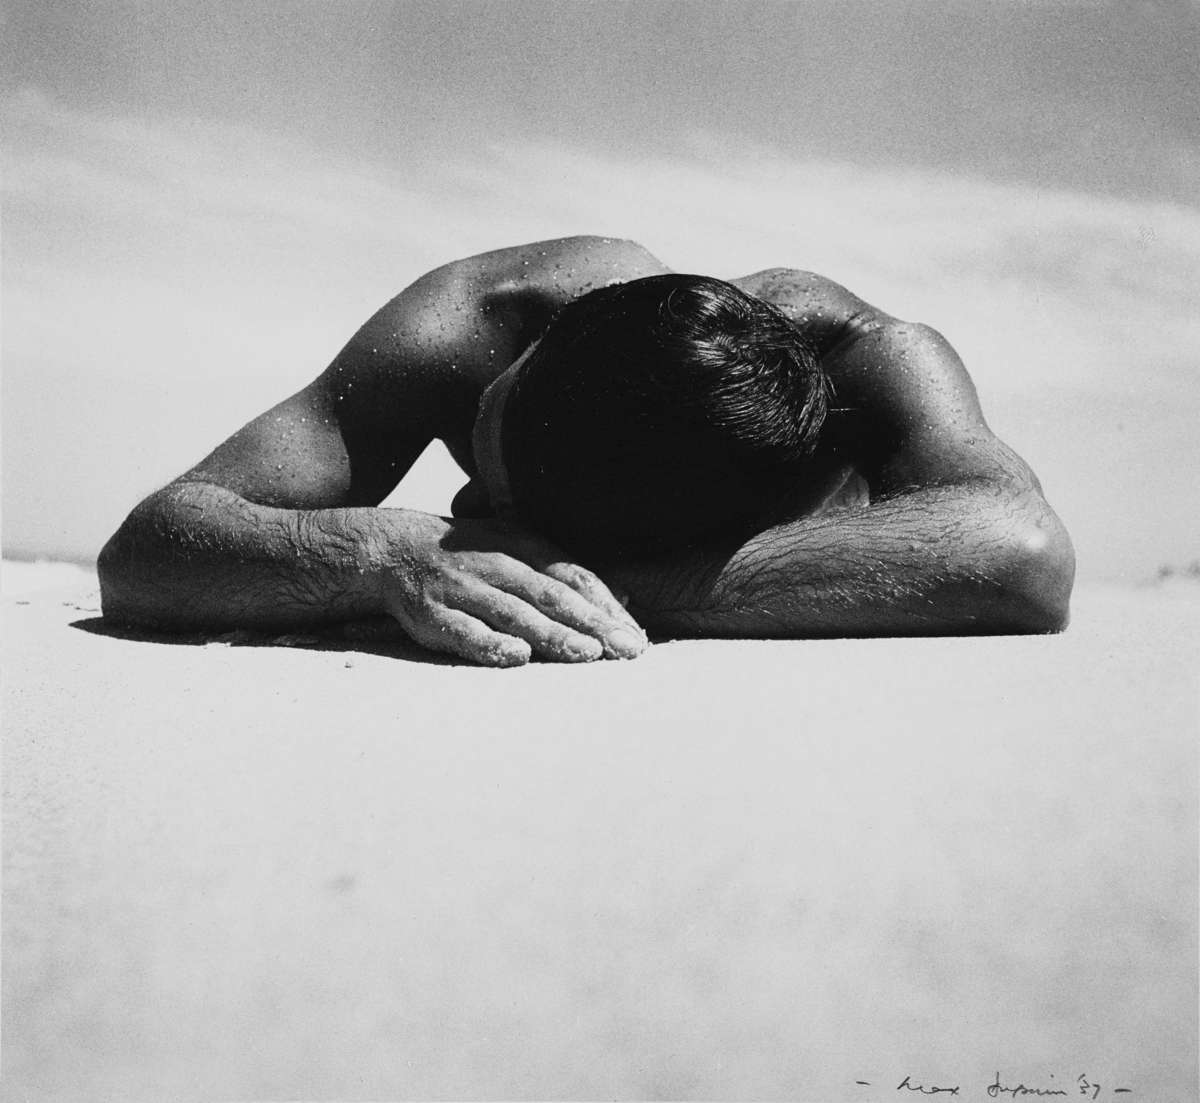 Max Dupain Sunbaker 1937. Silver gelatin photograph printed 1987. ANMM Collection 00001256.